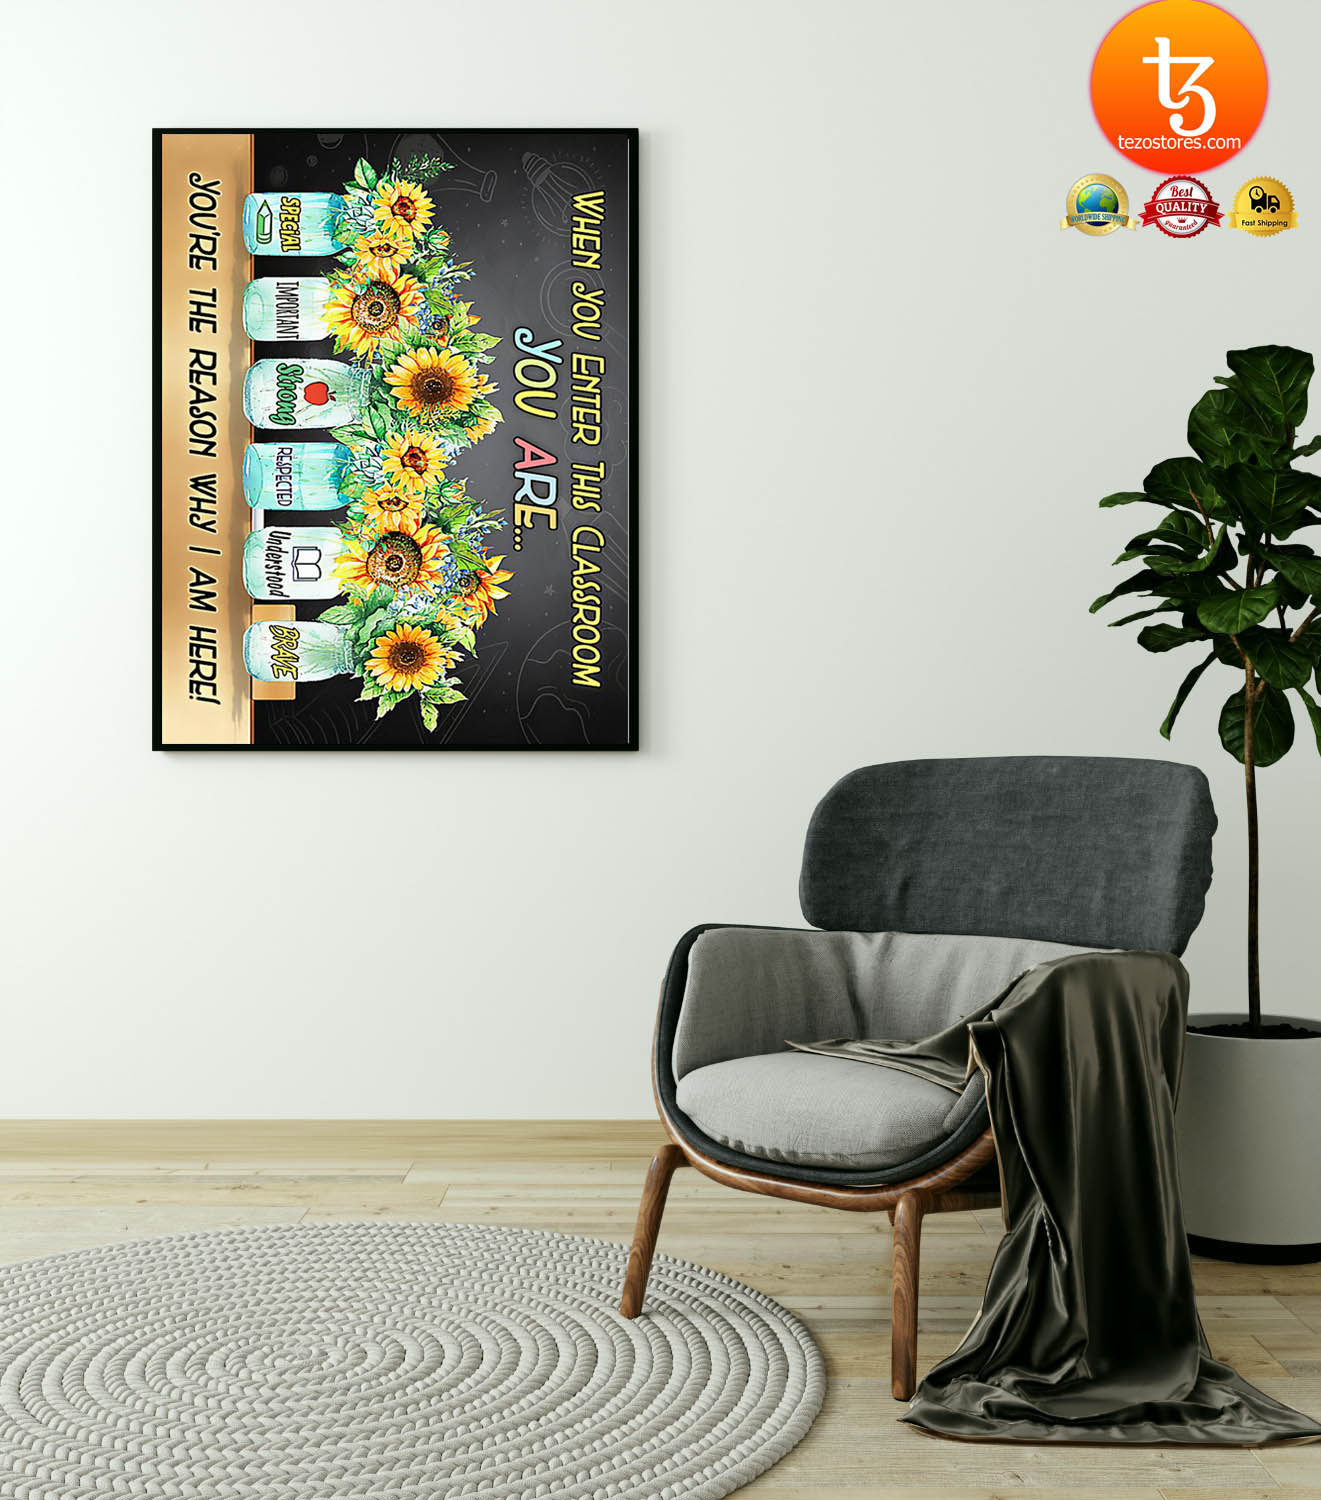 Sunflower when you enter this classroom poster 21